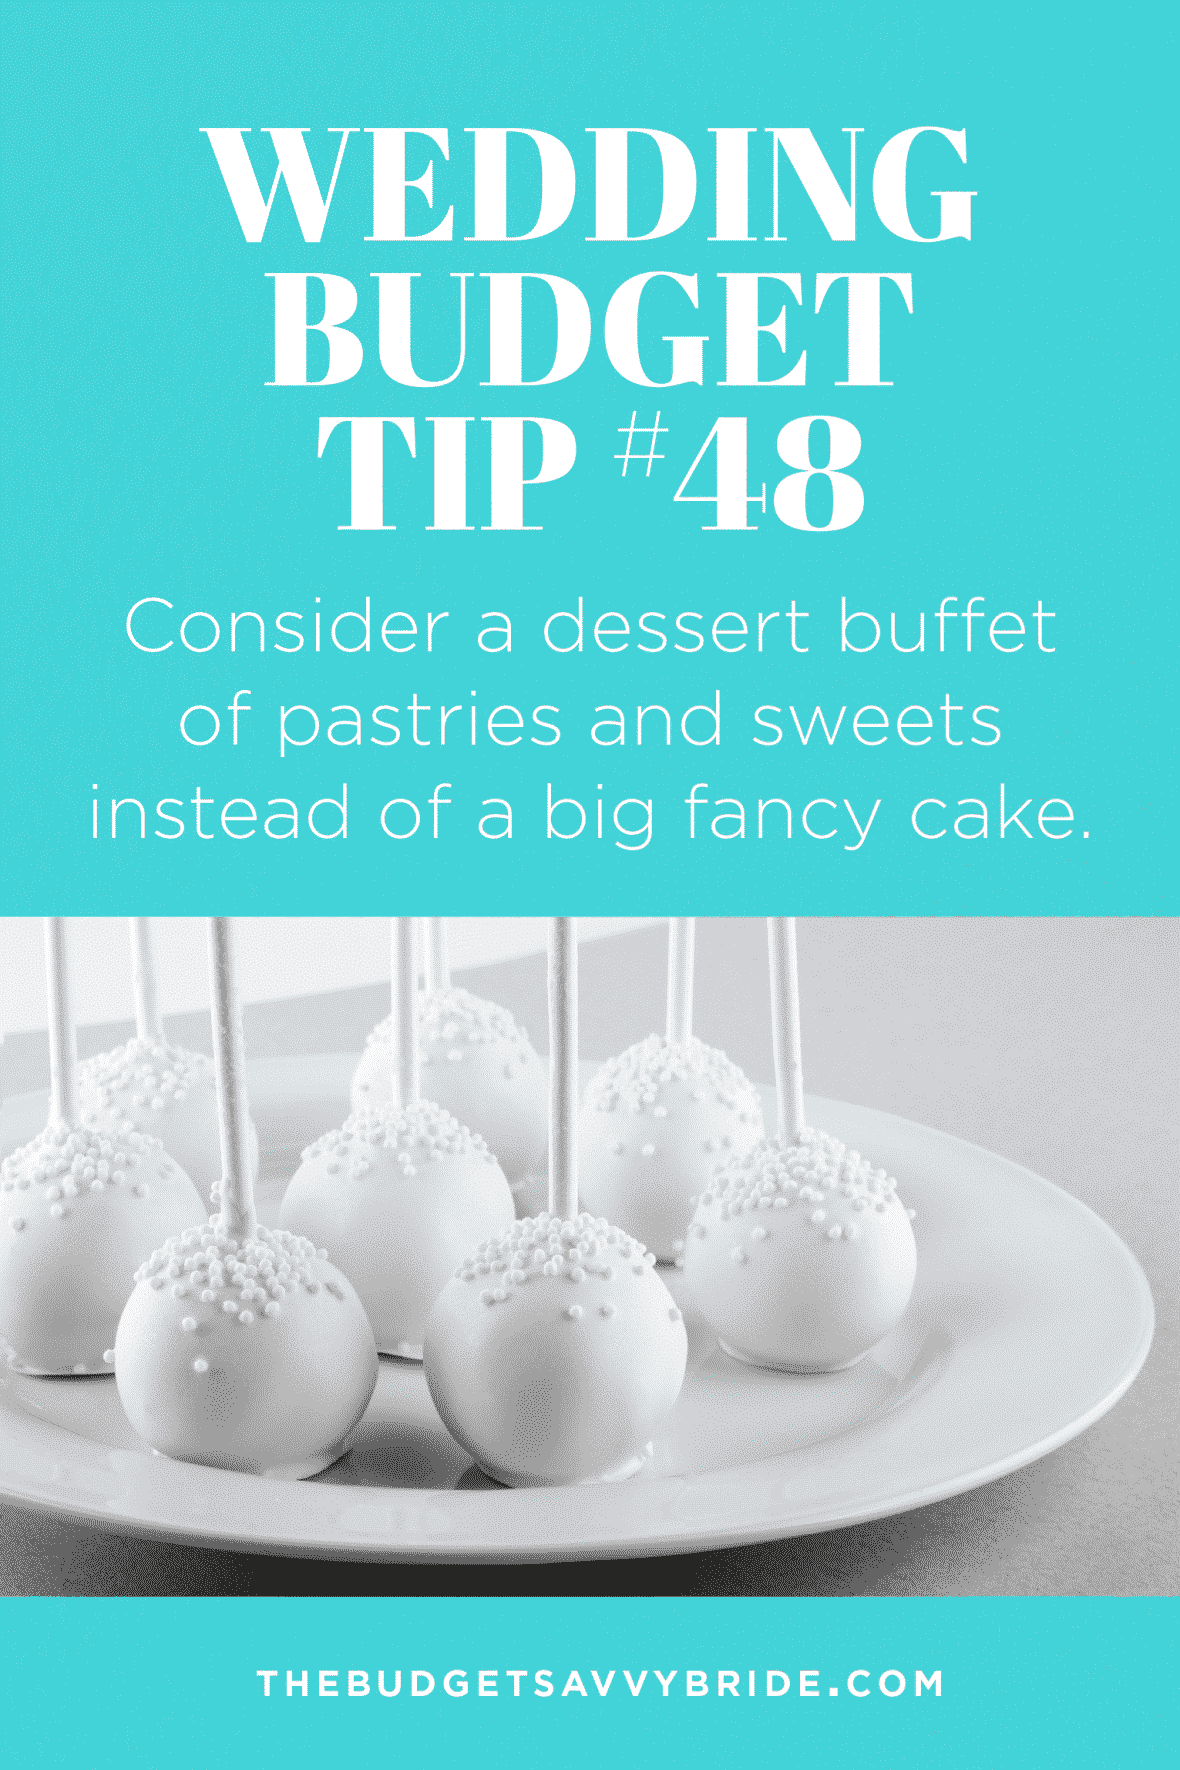 wedding budget tip48 (1)